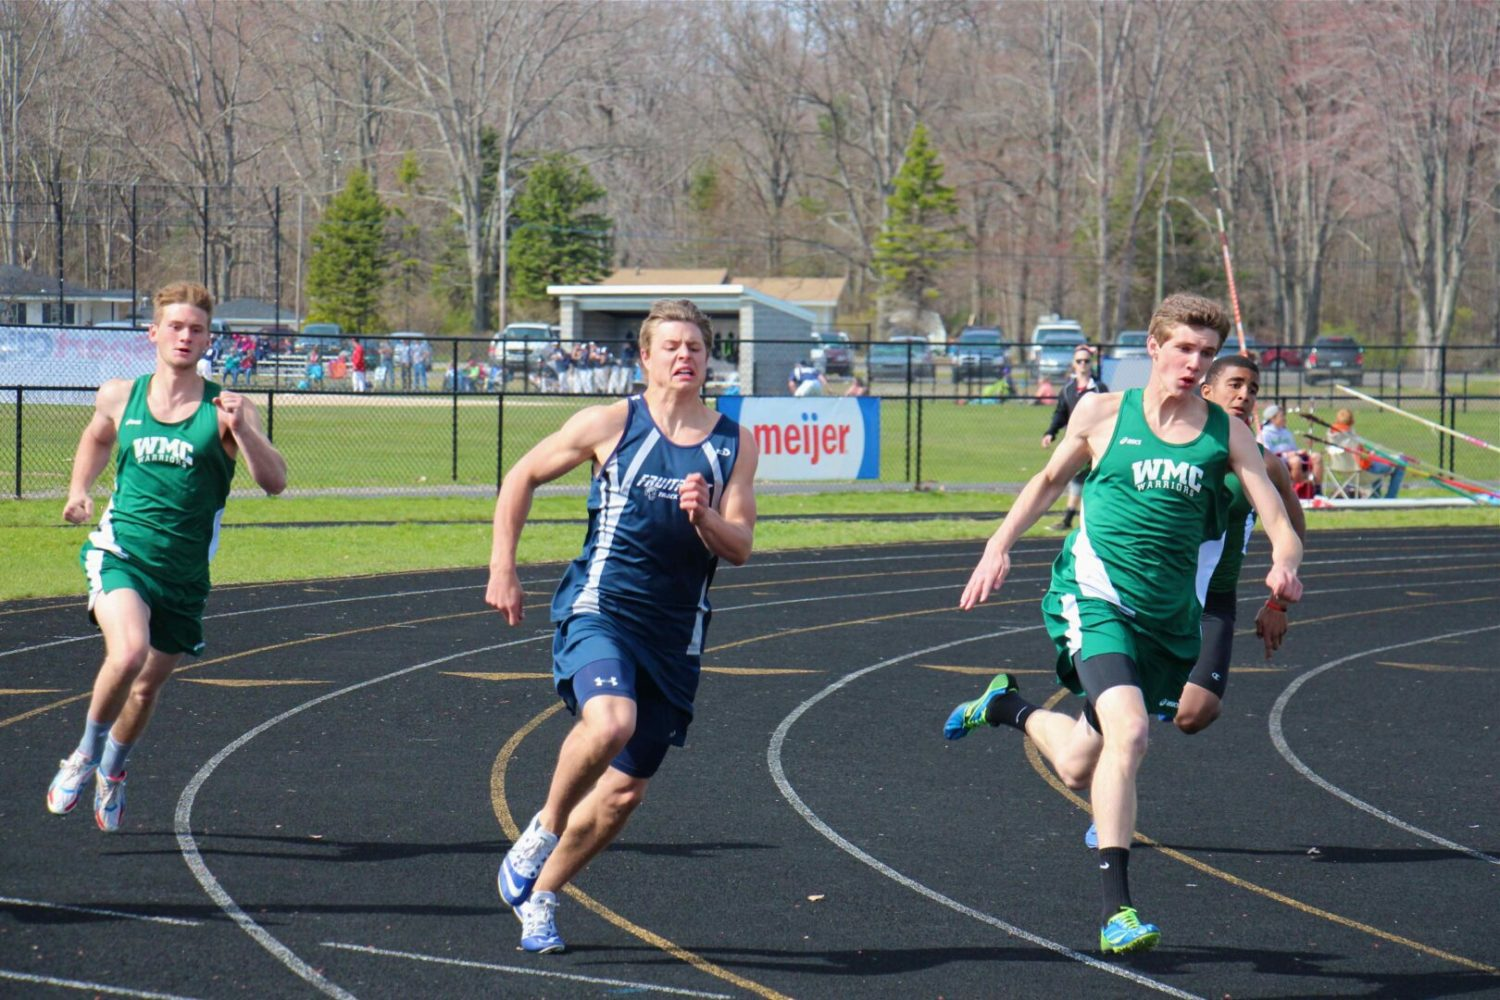 Repeat champions: Fruitport boys, Reeths-Puffer girls successfully defend GMAA track titles